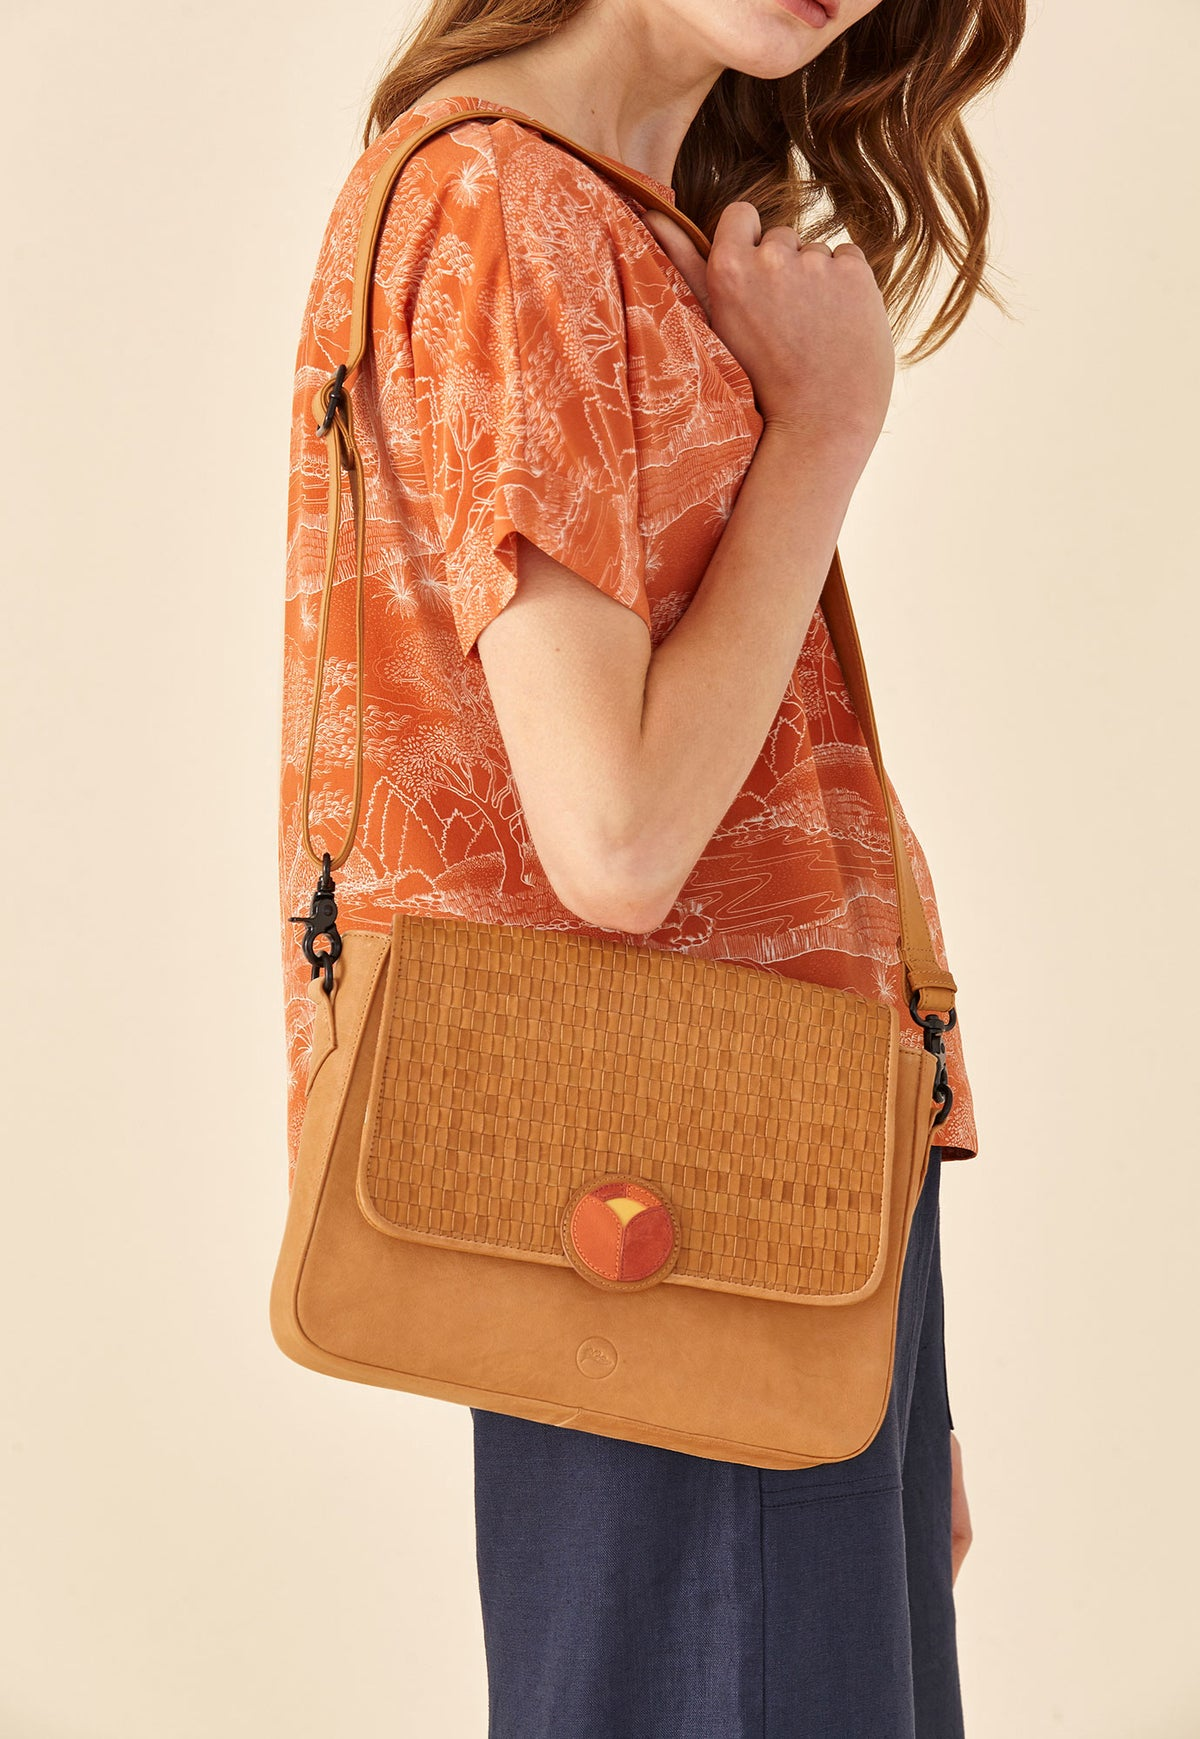 Sunrise Bag - Almond